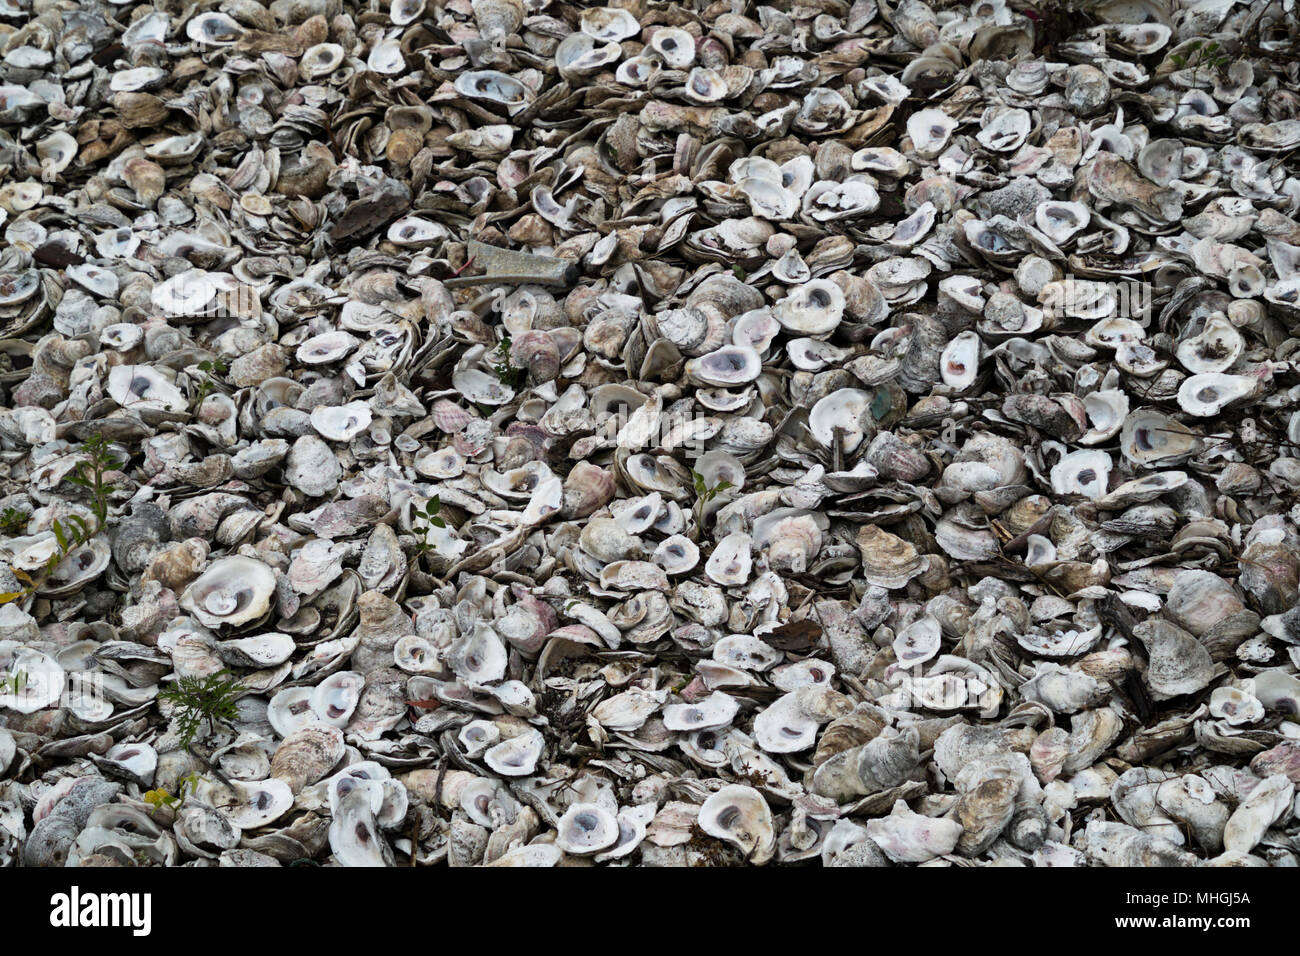 A Pile Of Discarded Oyster Shells Stock Photo 182918326 Alamy